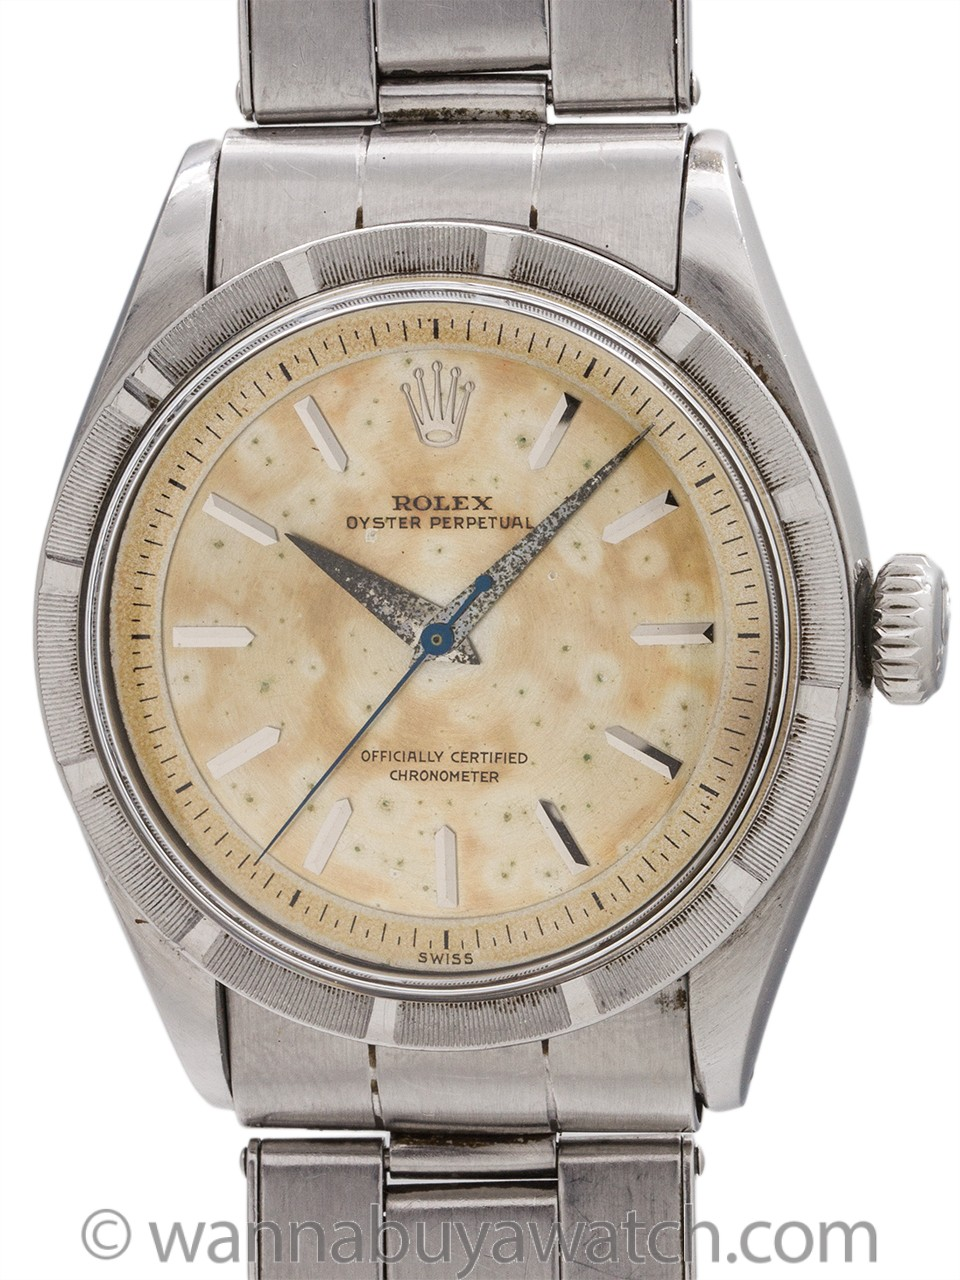 Rare Rolex Oyster Perpetual ref 6303 Stainless Steel circa 1954